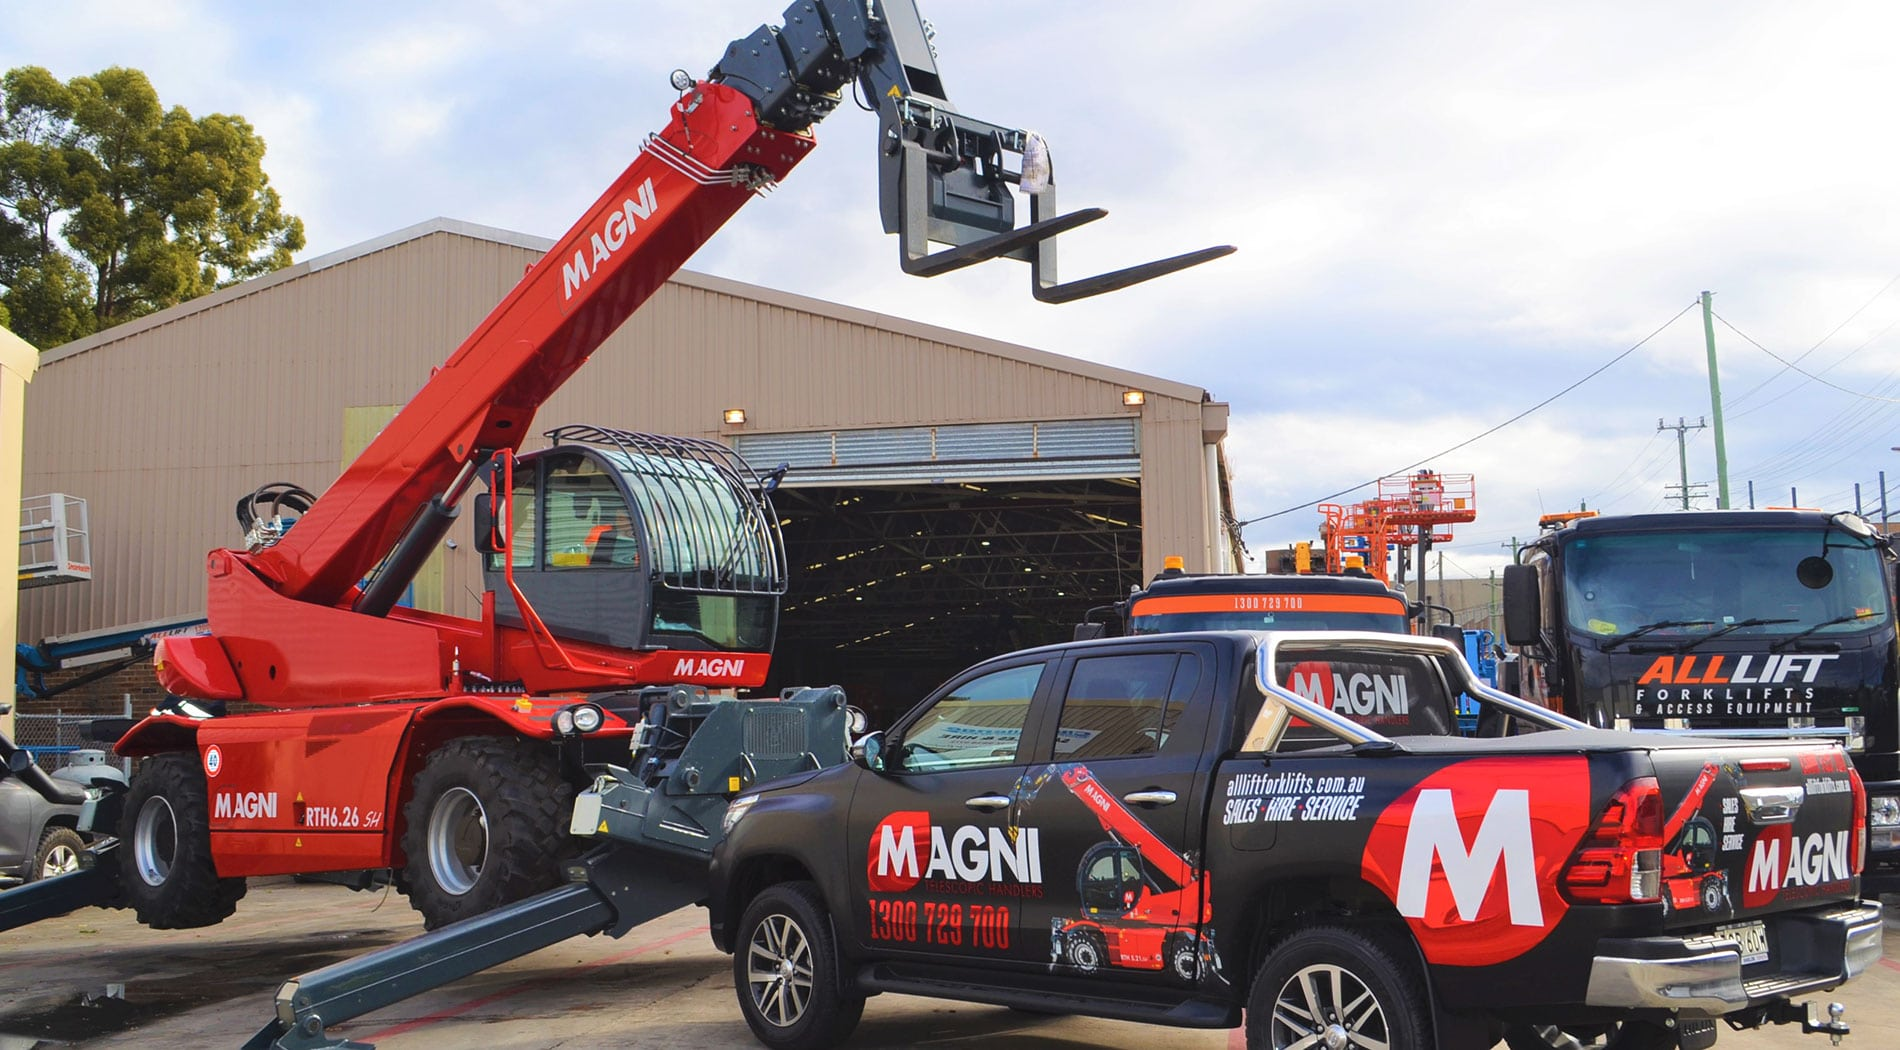 All Lift Forklifts Magni Telehandlers